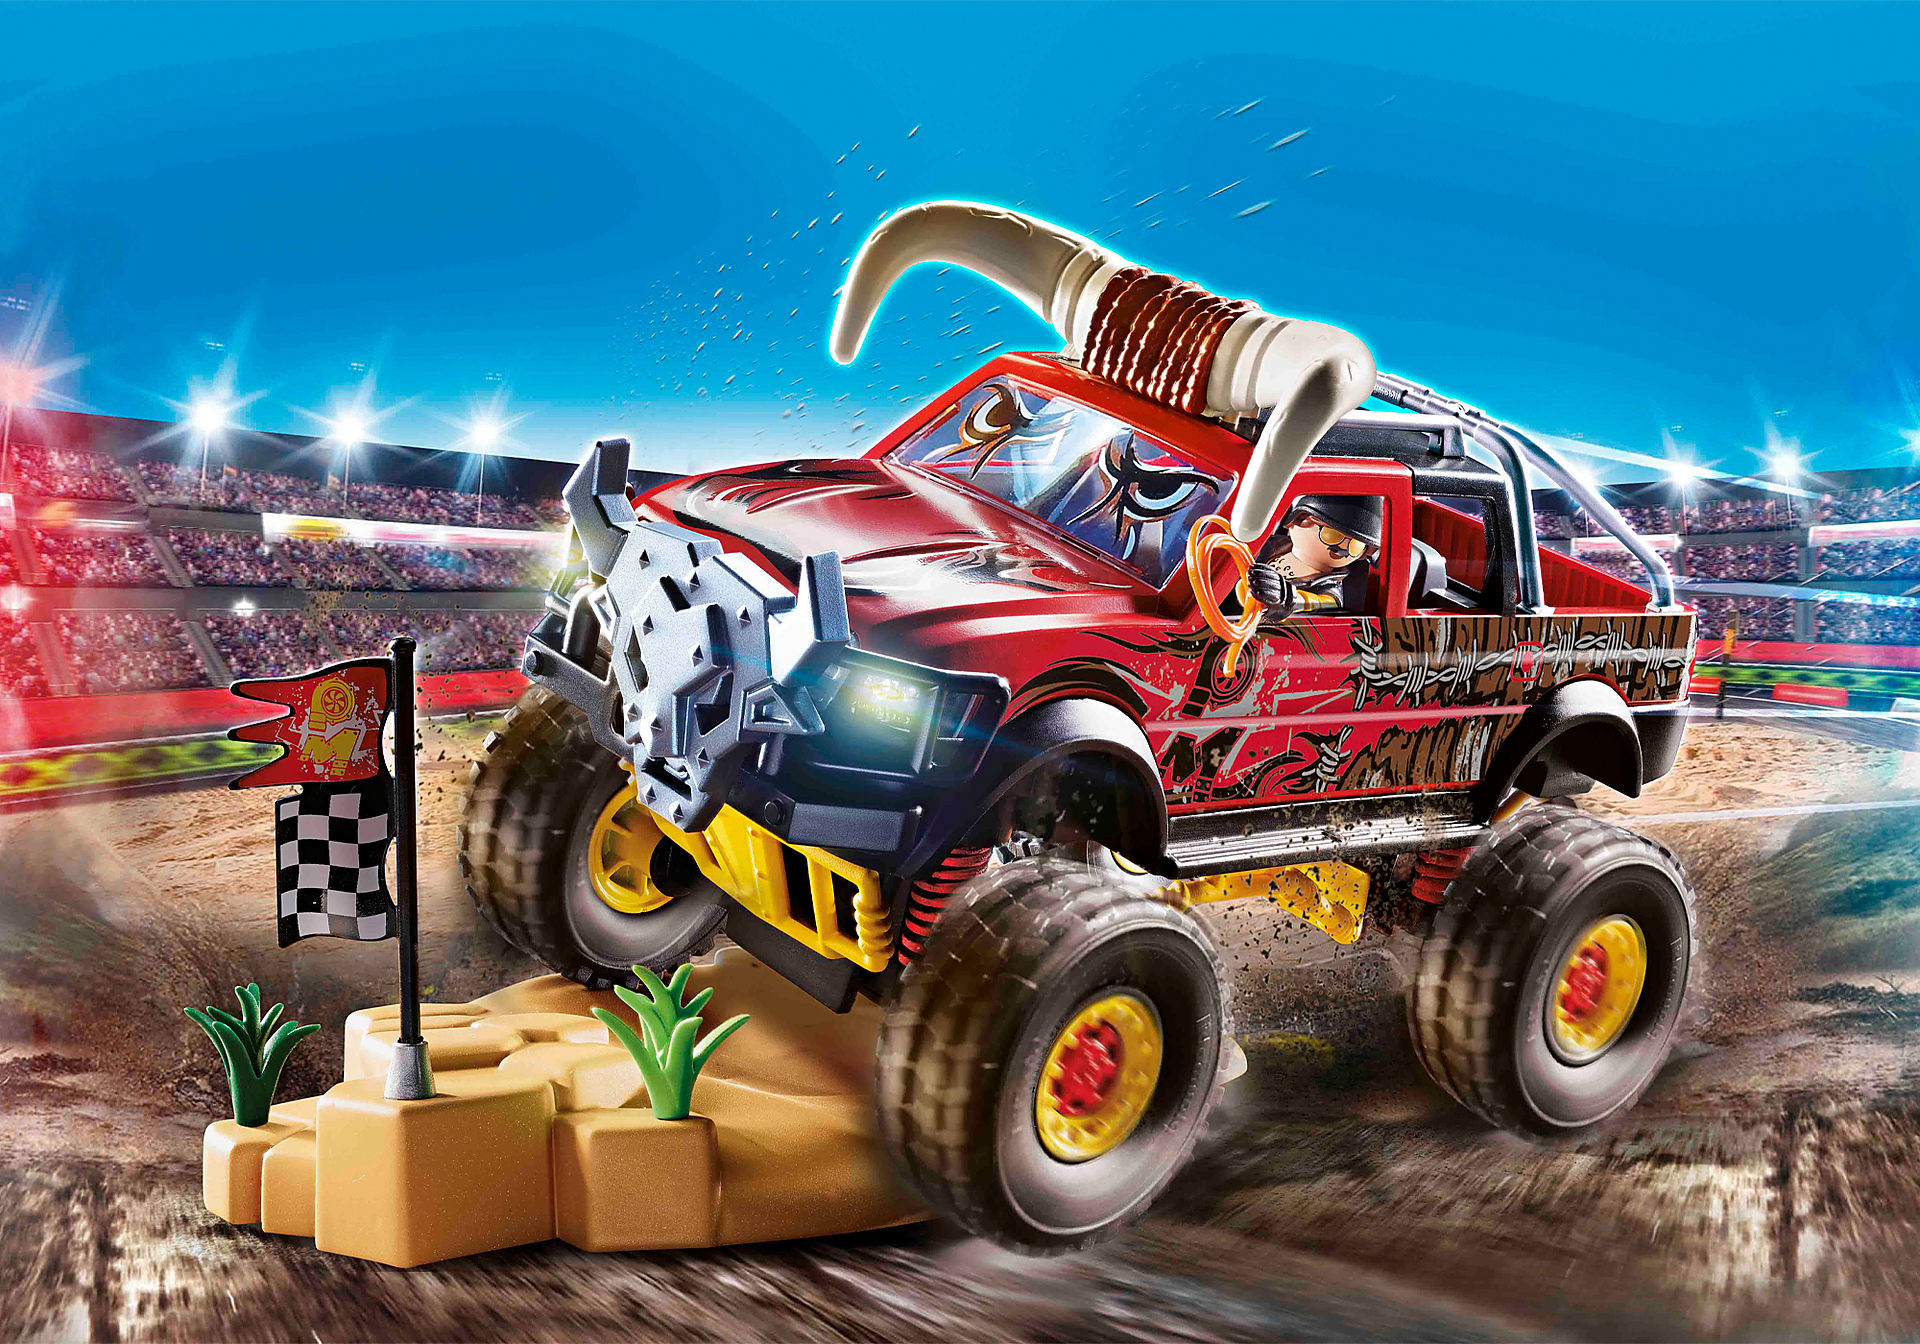 70549 Stuntshow Monster Truck met hoorns zoom image1